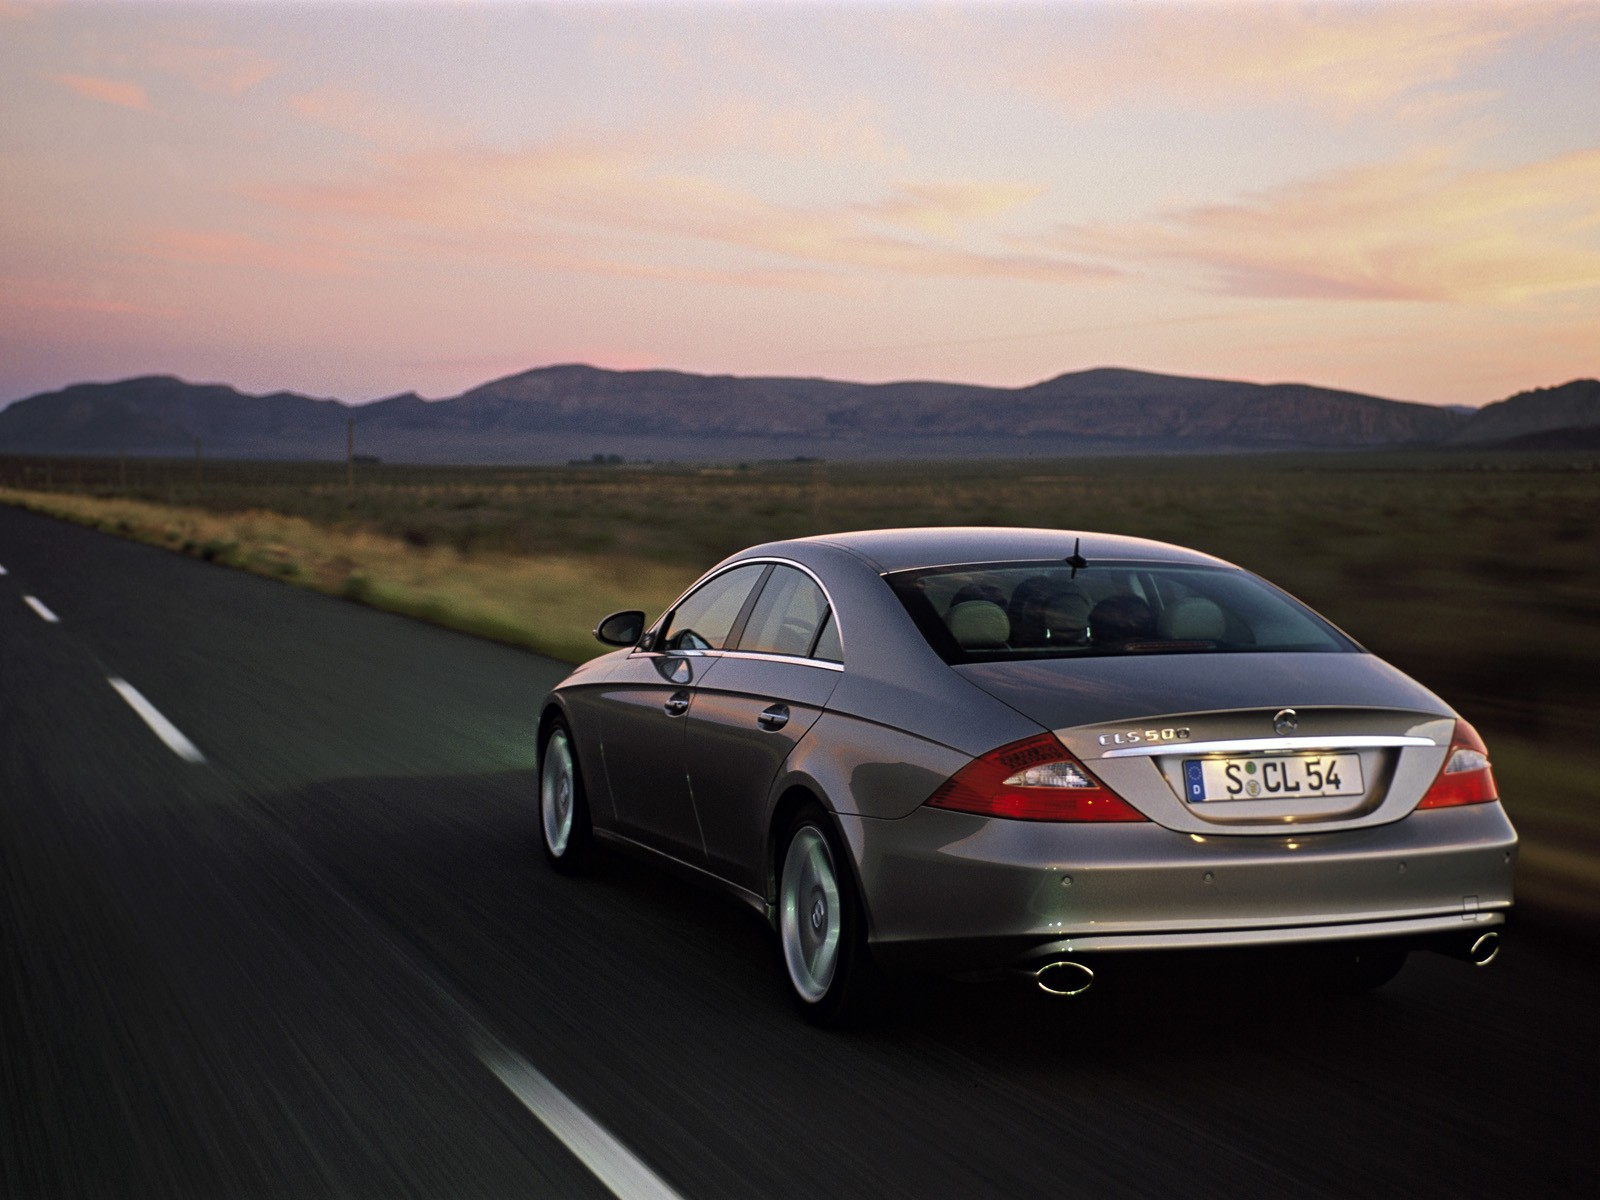 2005 Mercedes-Benz CLS Full hd wallpapers